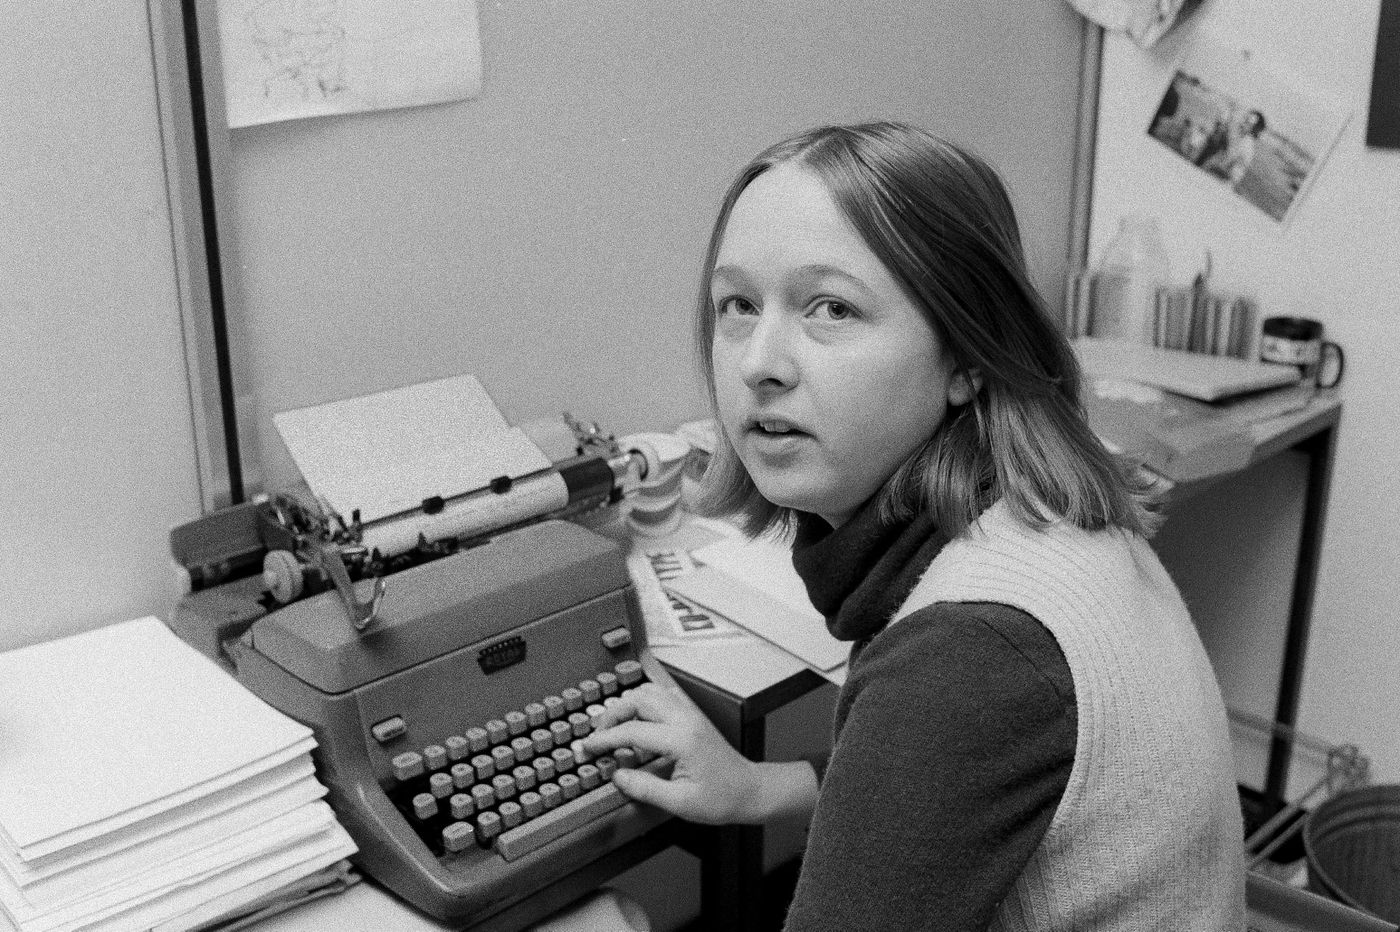 40 years after a historic court decision, are female sports journalists treated equally?